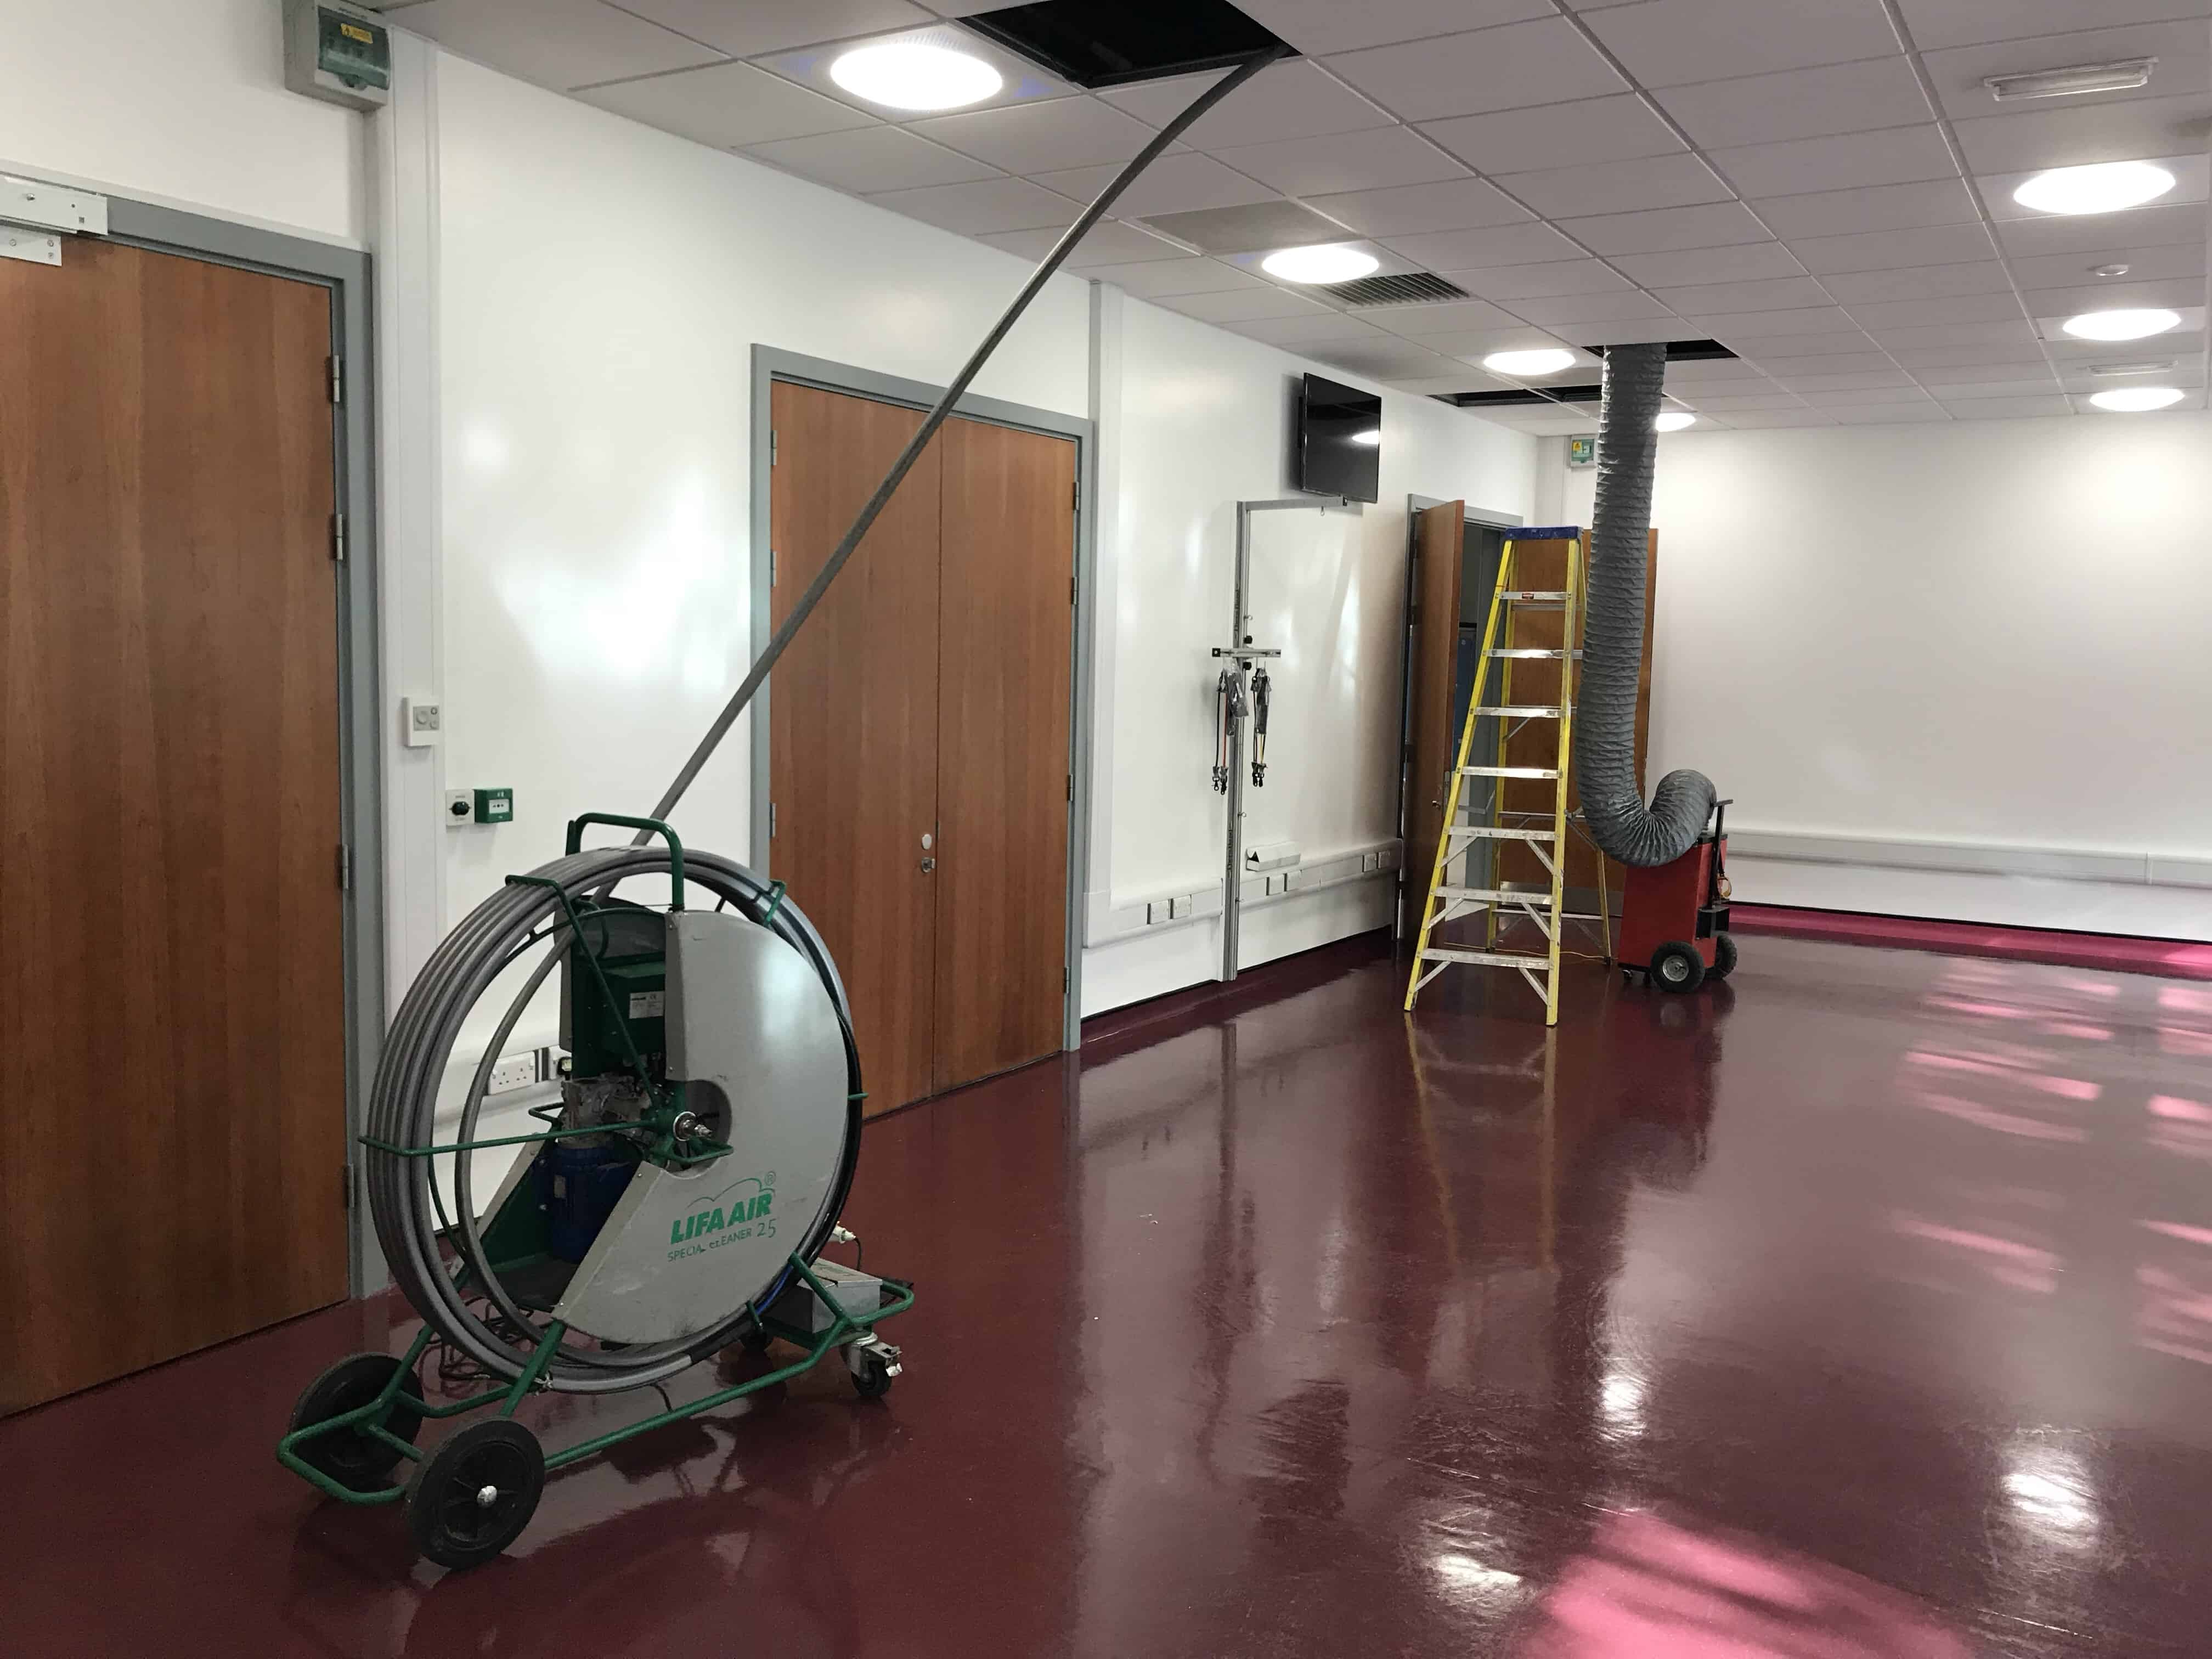 University of Birmingham duct clean in progress